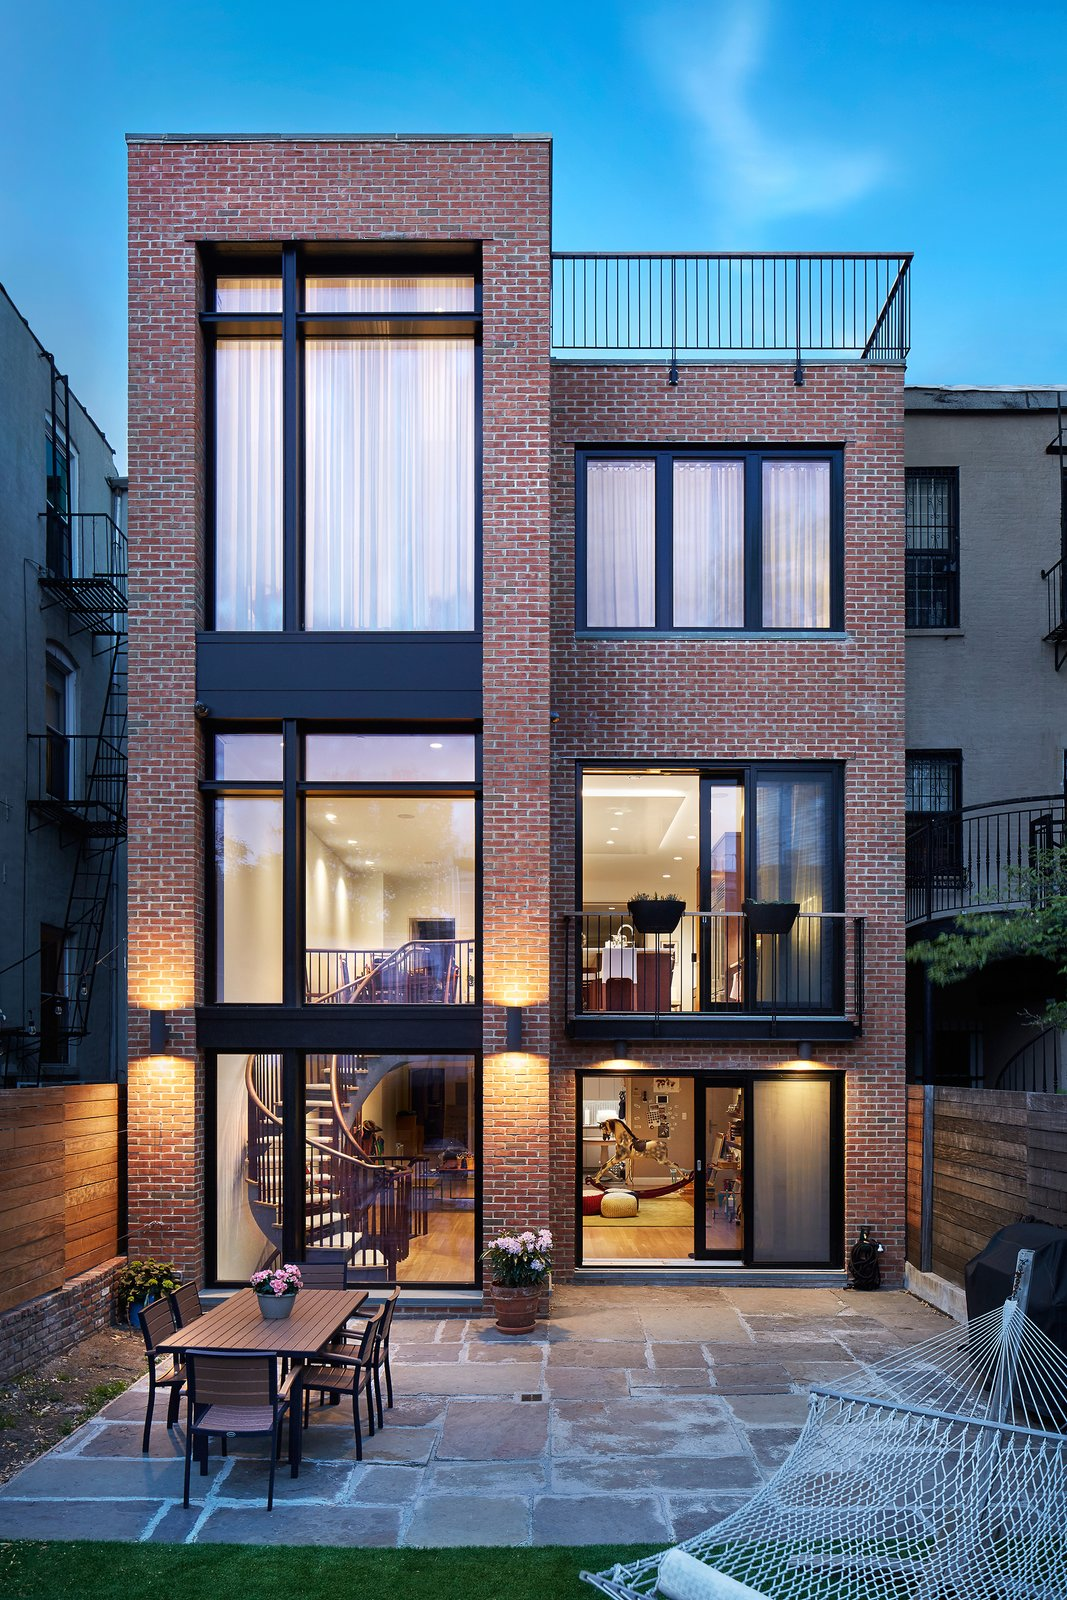 In contrast to the historically-preserved street facade, the rear facade was significantly opened up to create light-flooded spaces using Zola's Thermo Clad line with a more modern aesthetic.